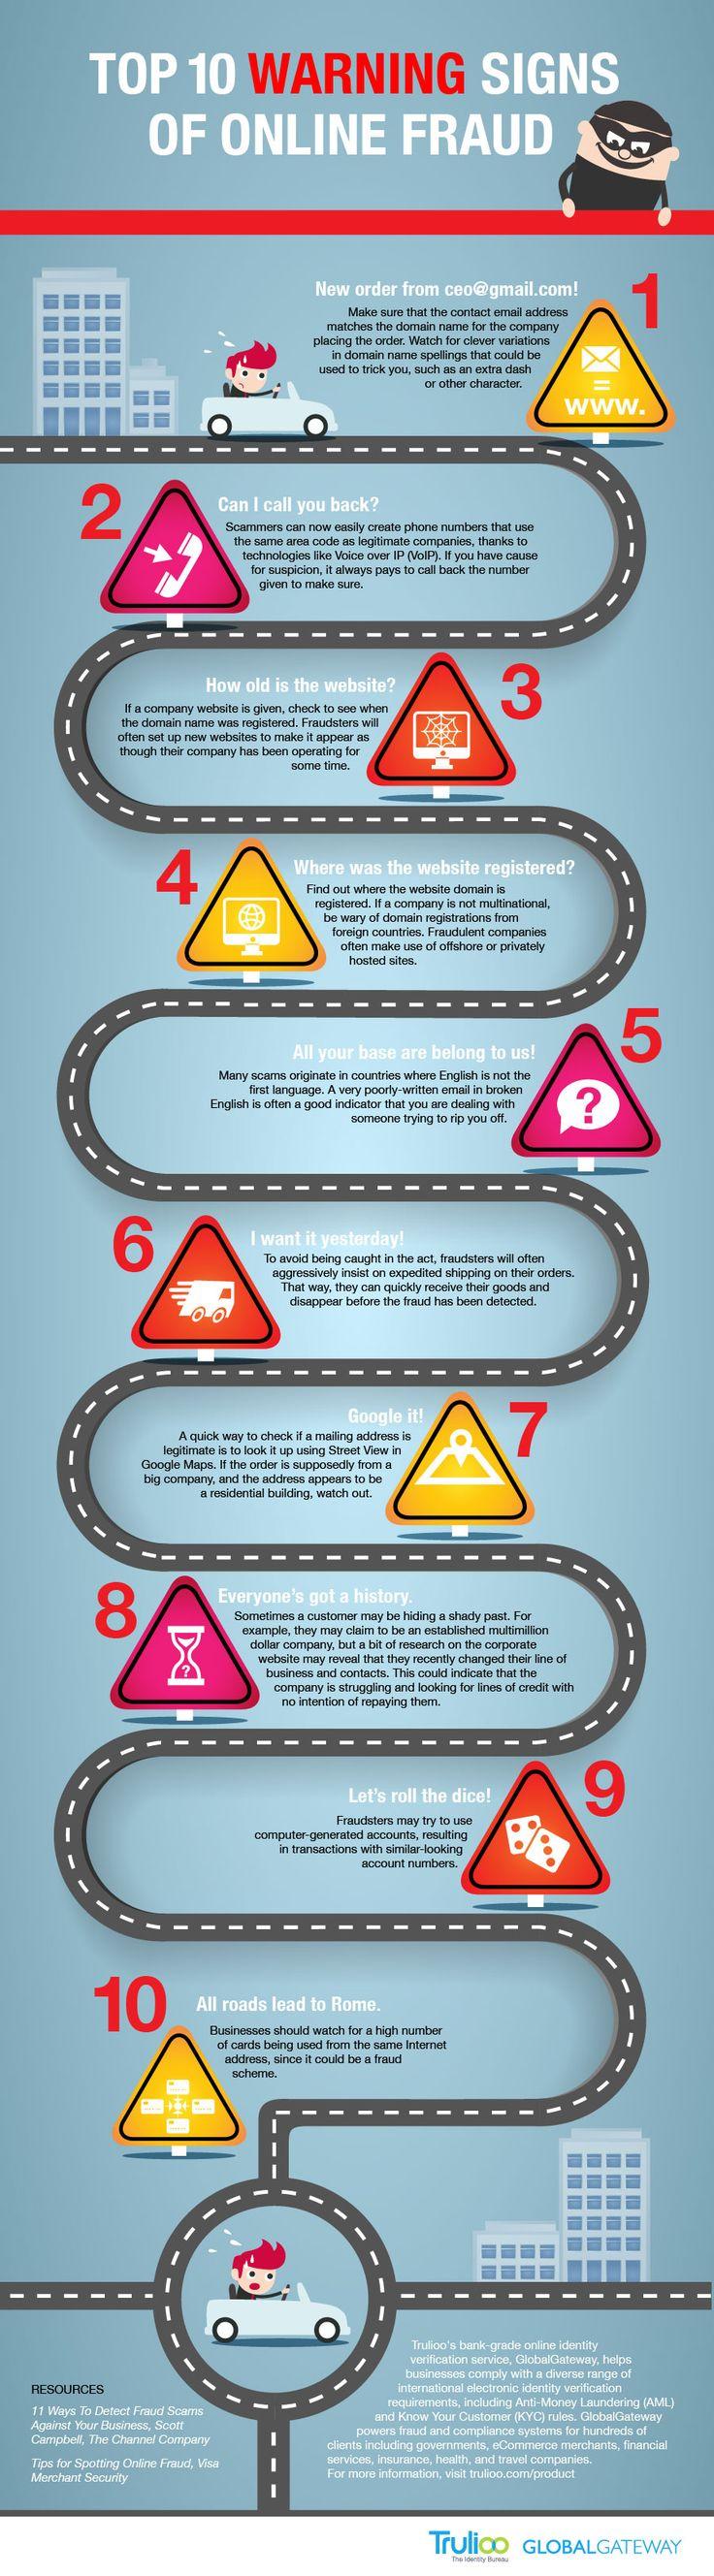 Top 10 Warning Signs Of Online Fraud Graphic By @trulioo #list